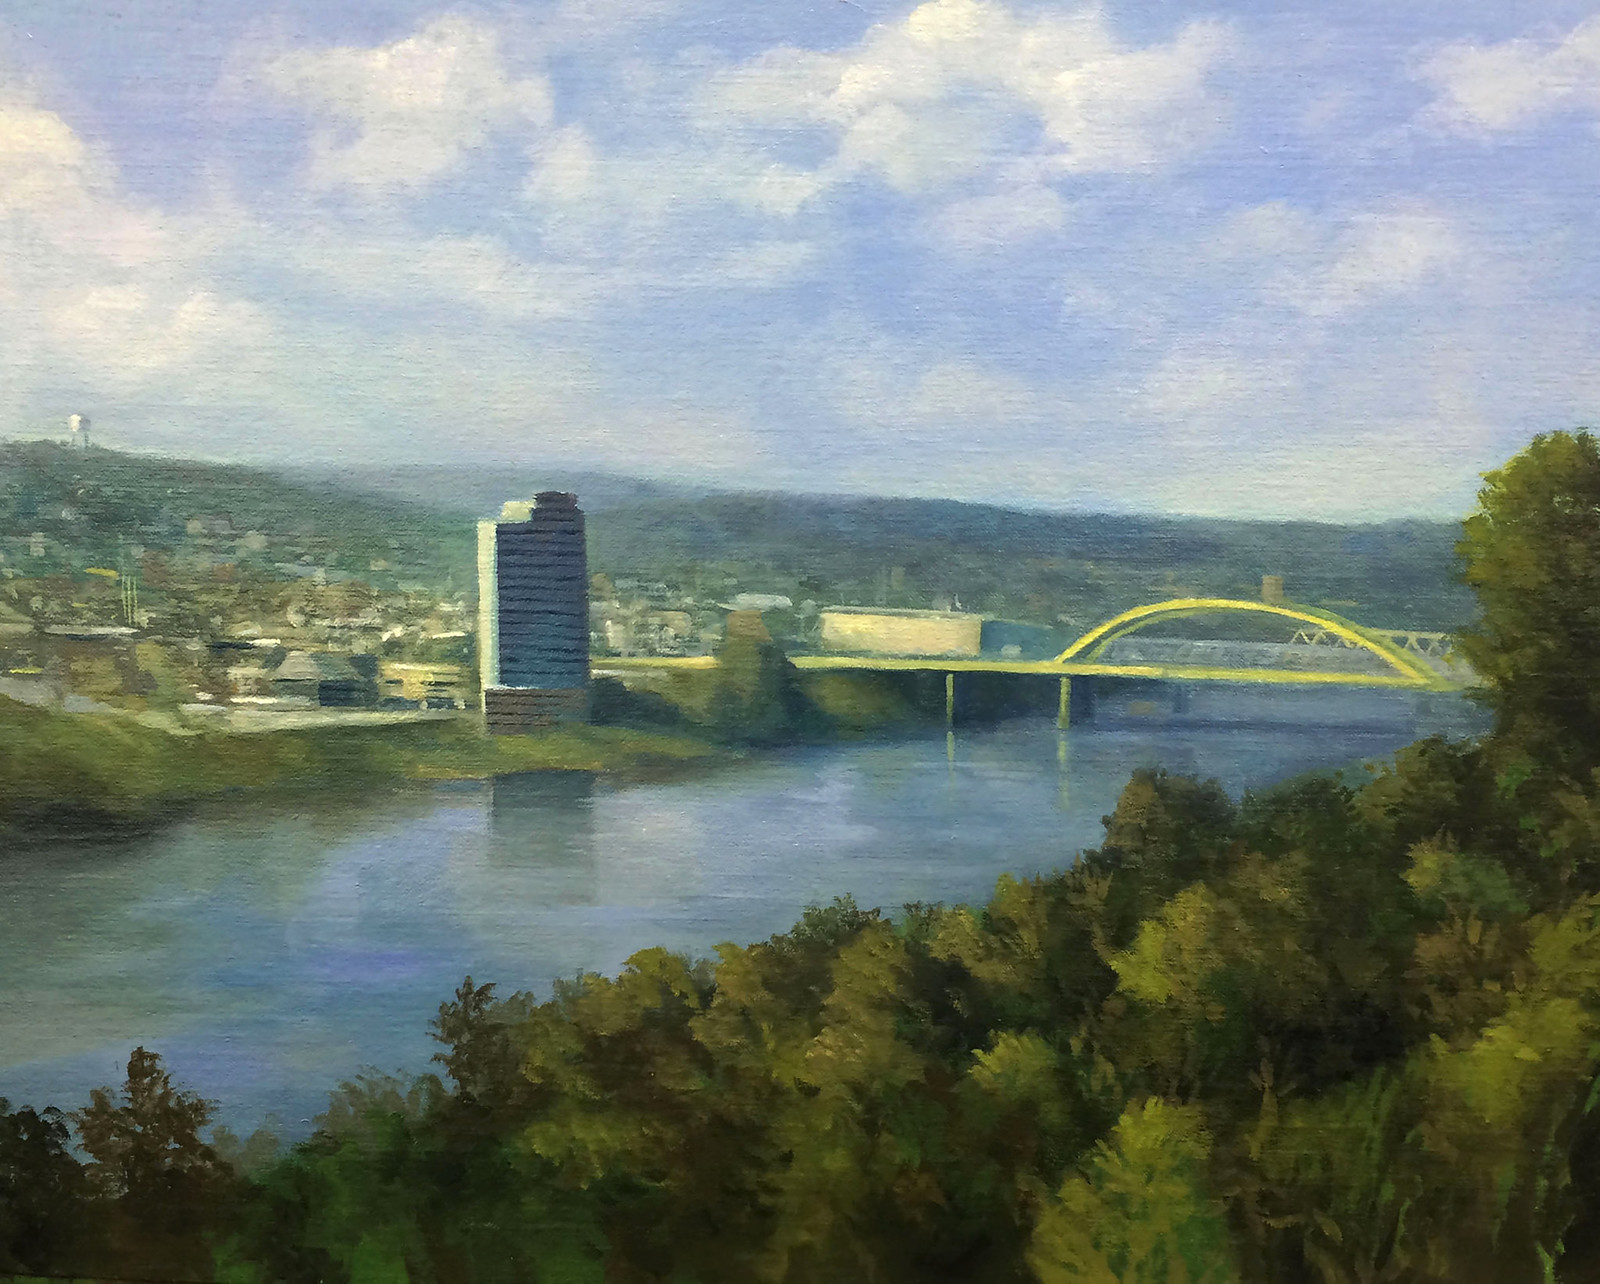 26th Annual The View Juried Landscape Exhibition